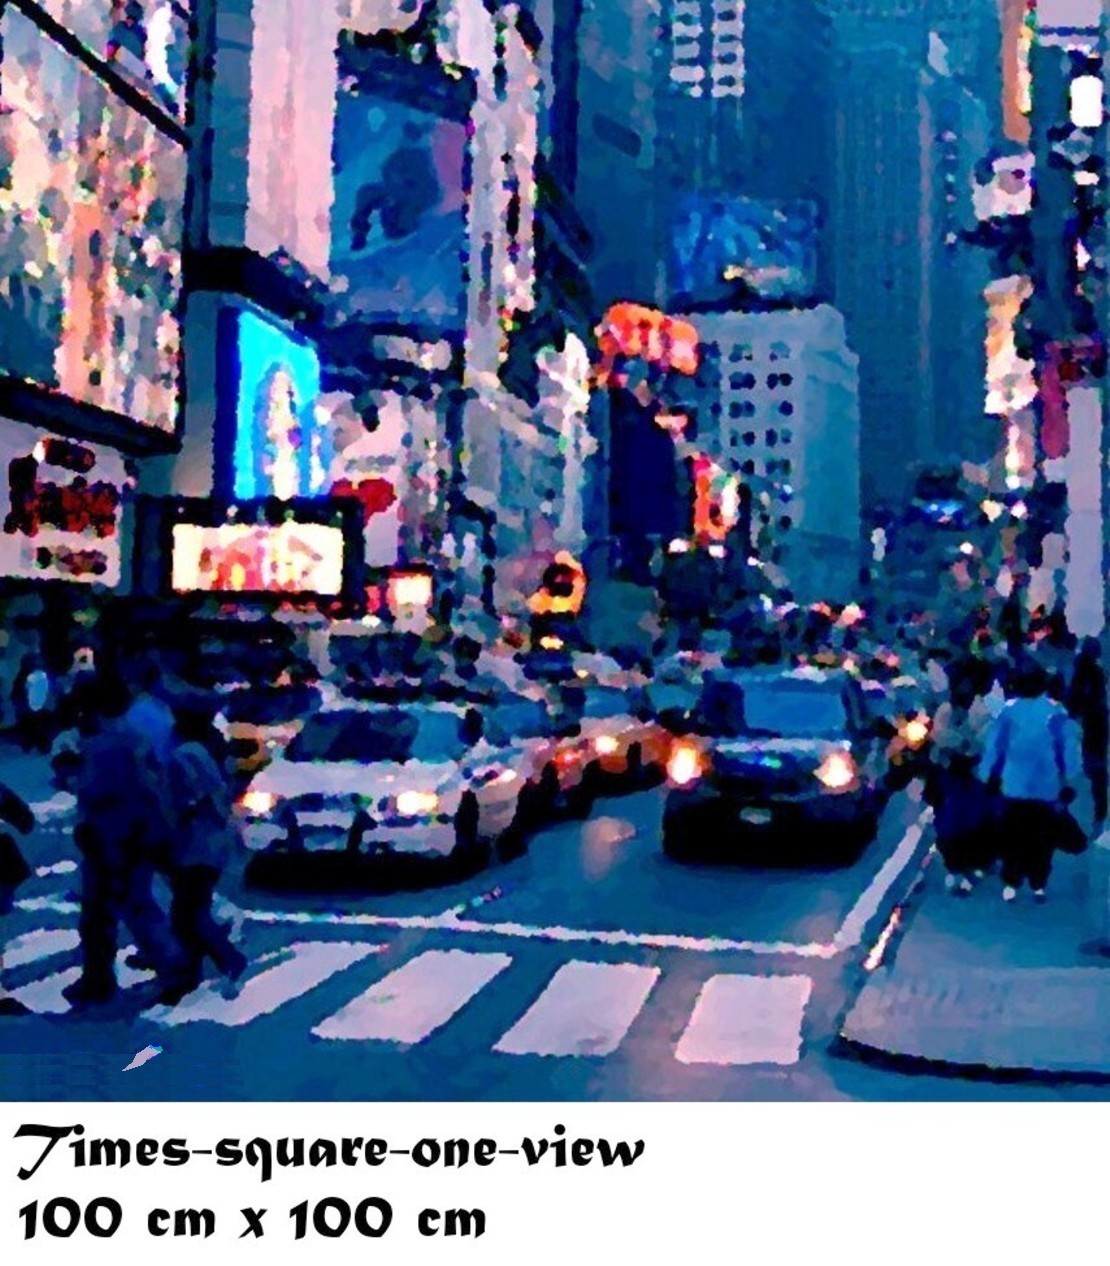 Times square one view